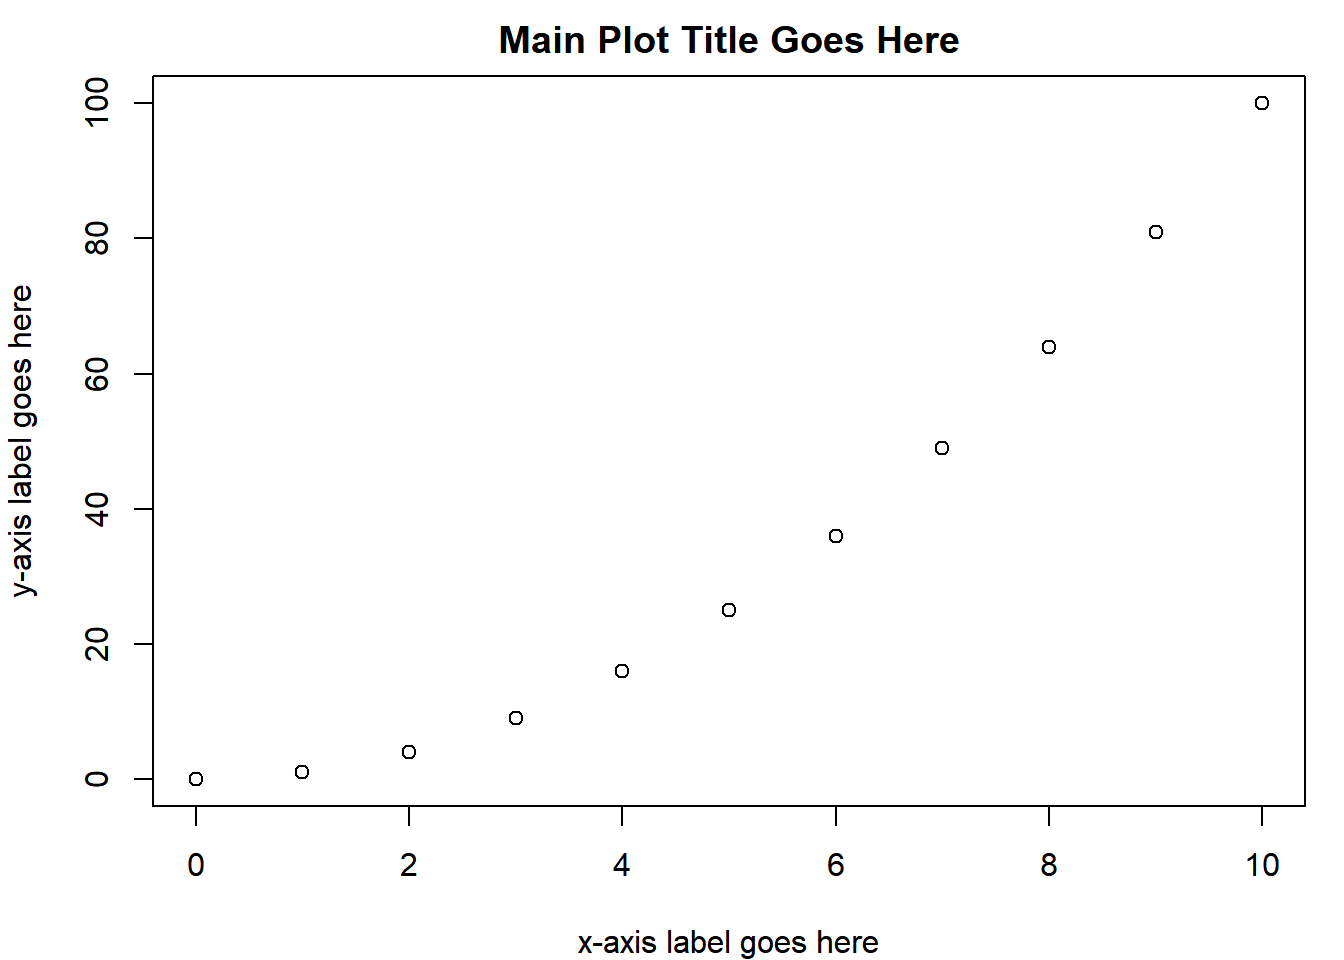 Chapter 2 Base R Plotting Basics | Introduction to R for